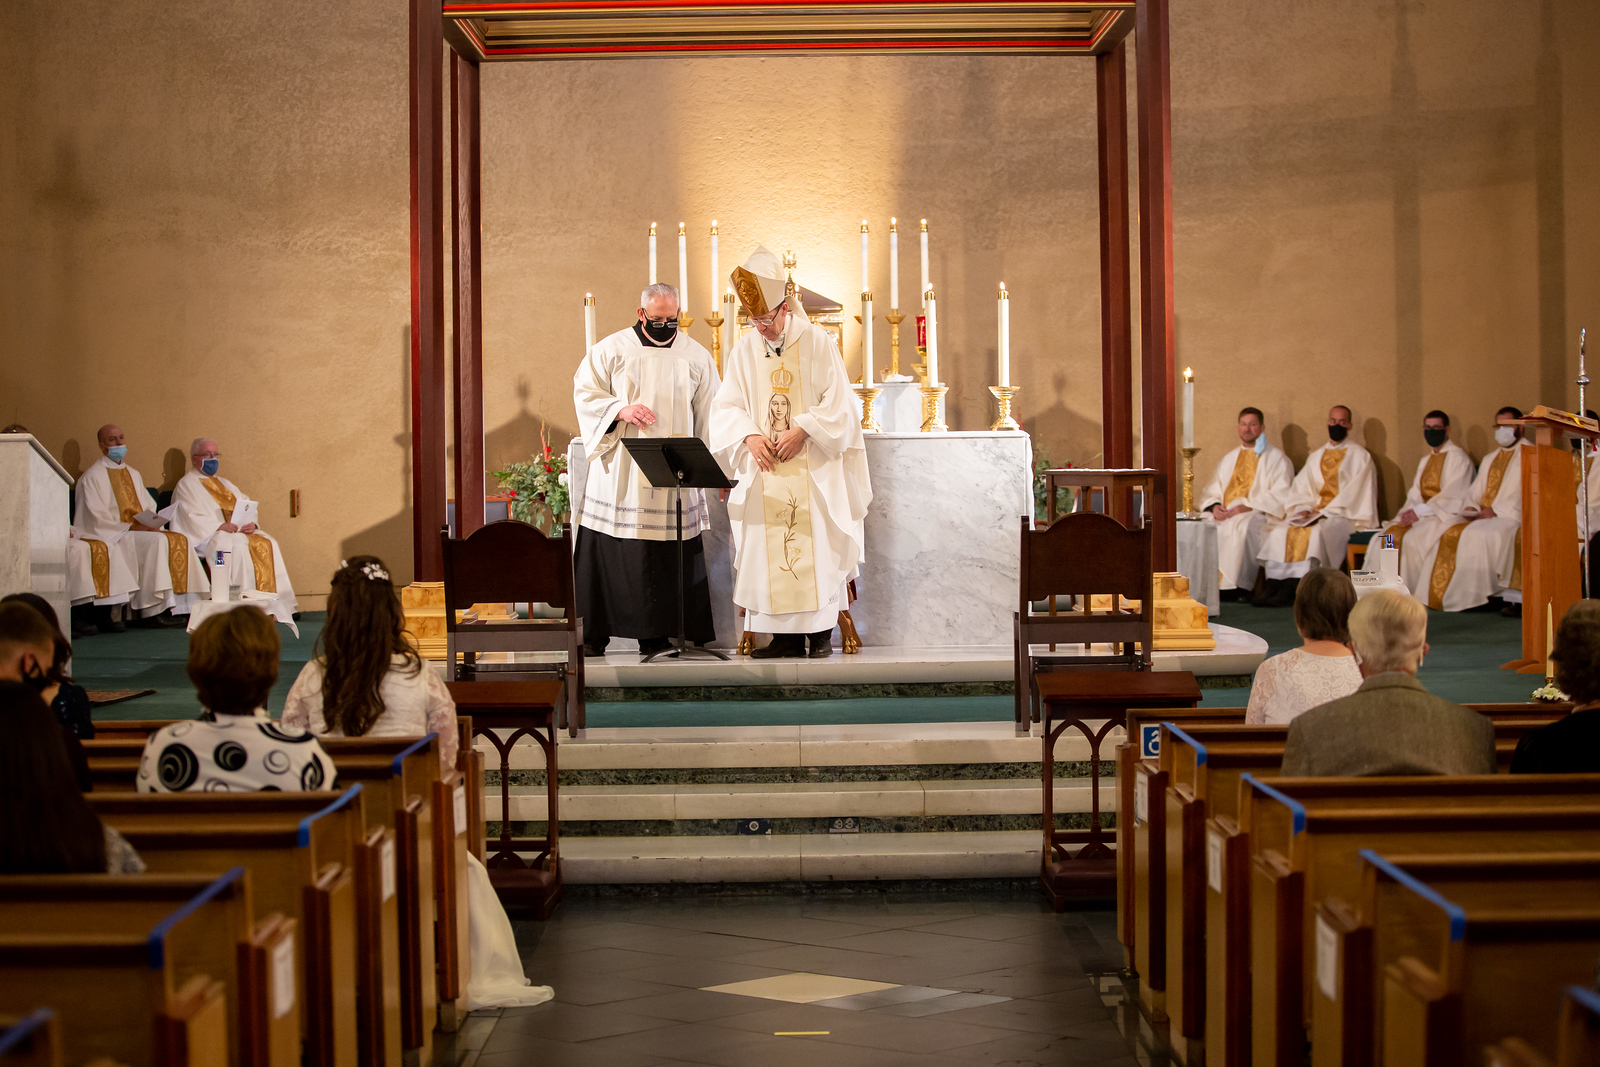 Mass_Sr_Anthony_Mary_063.jpg